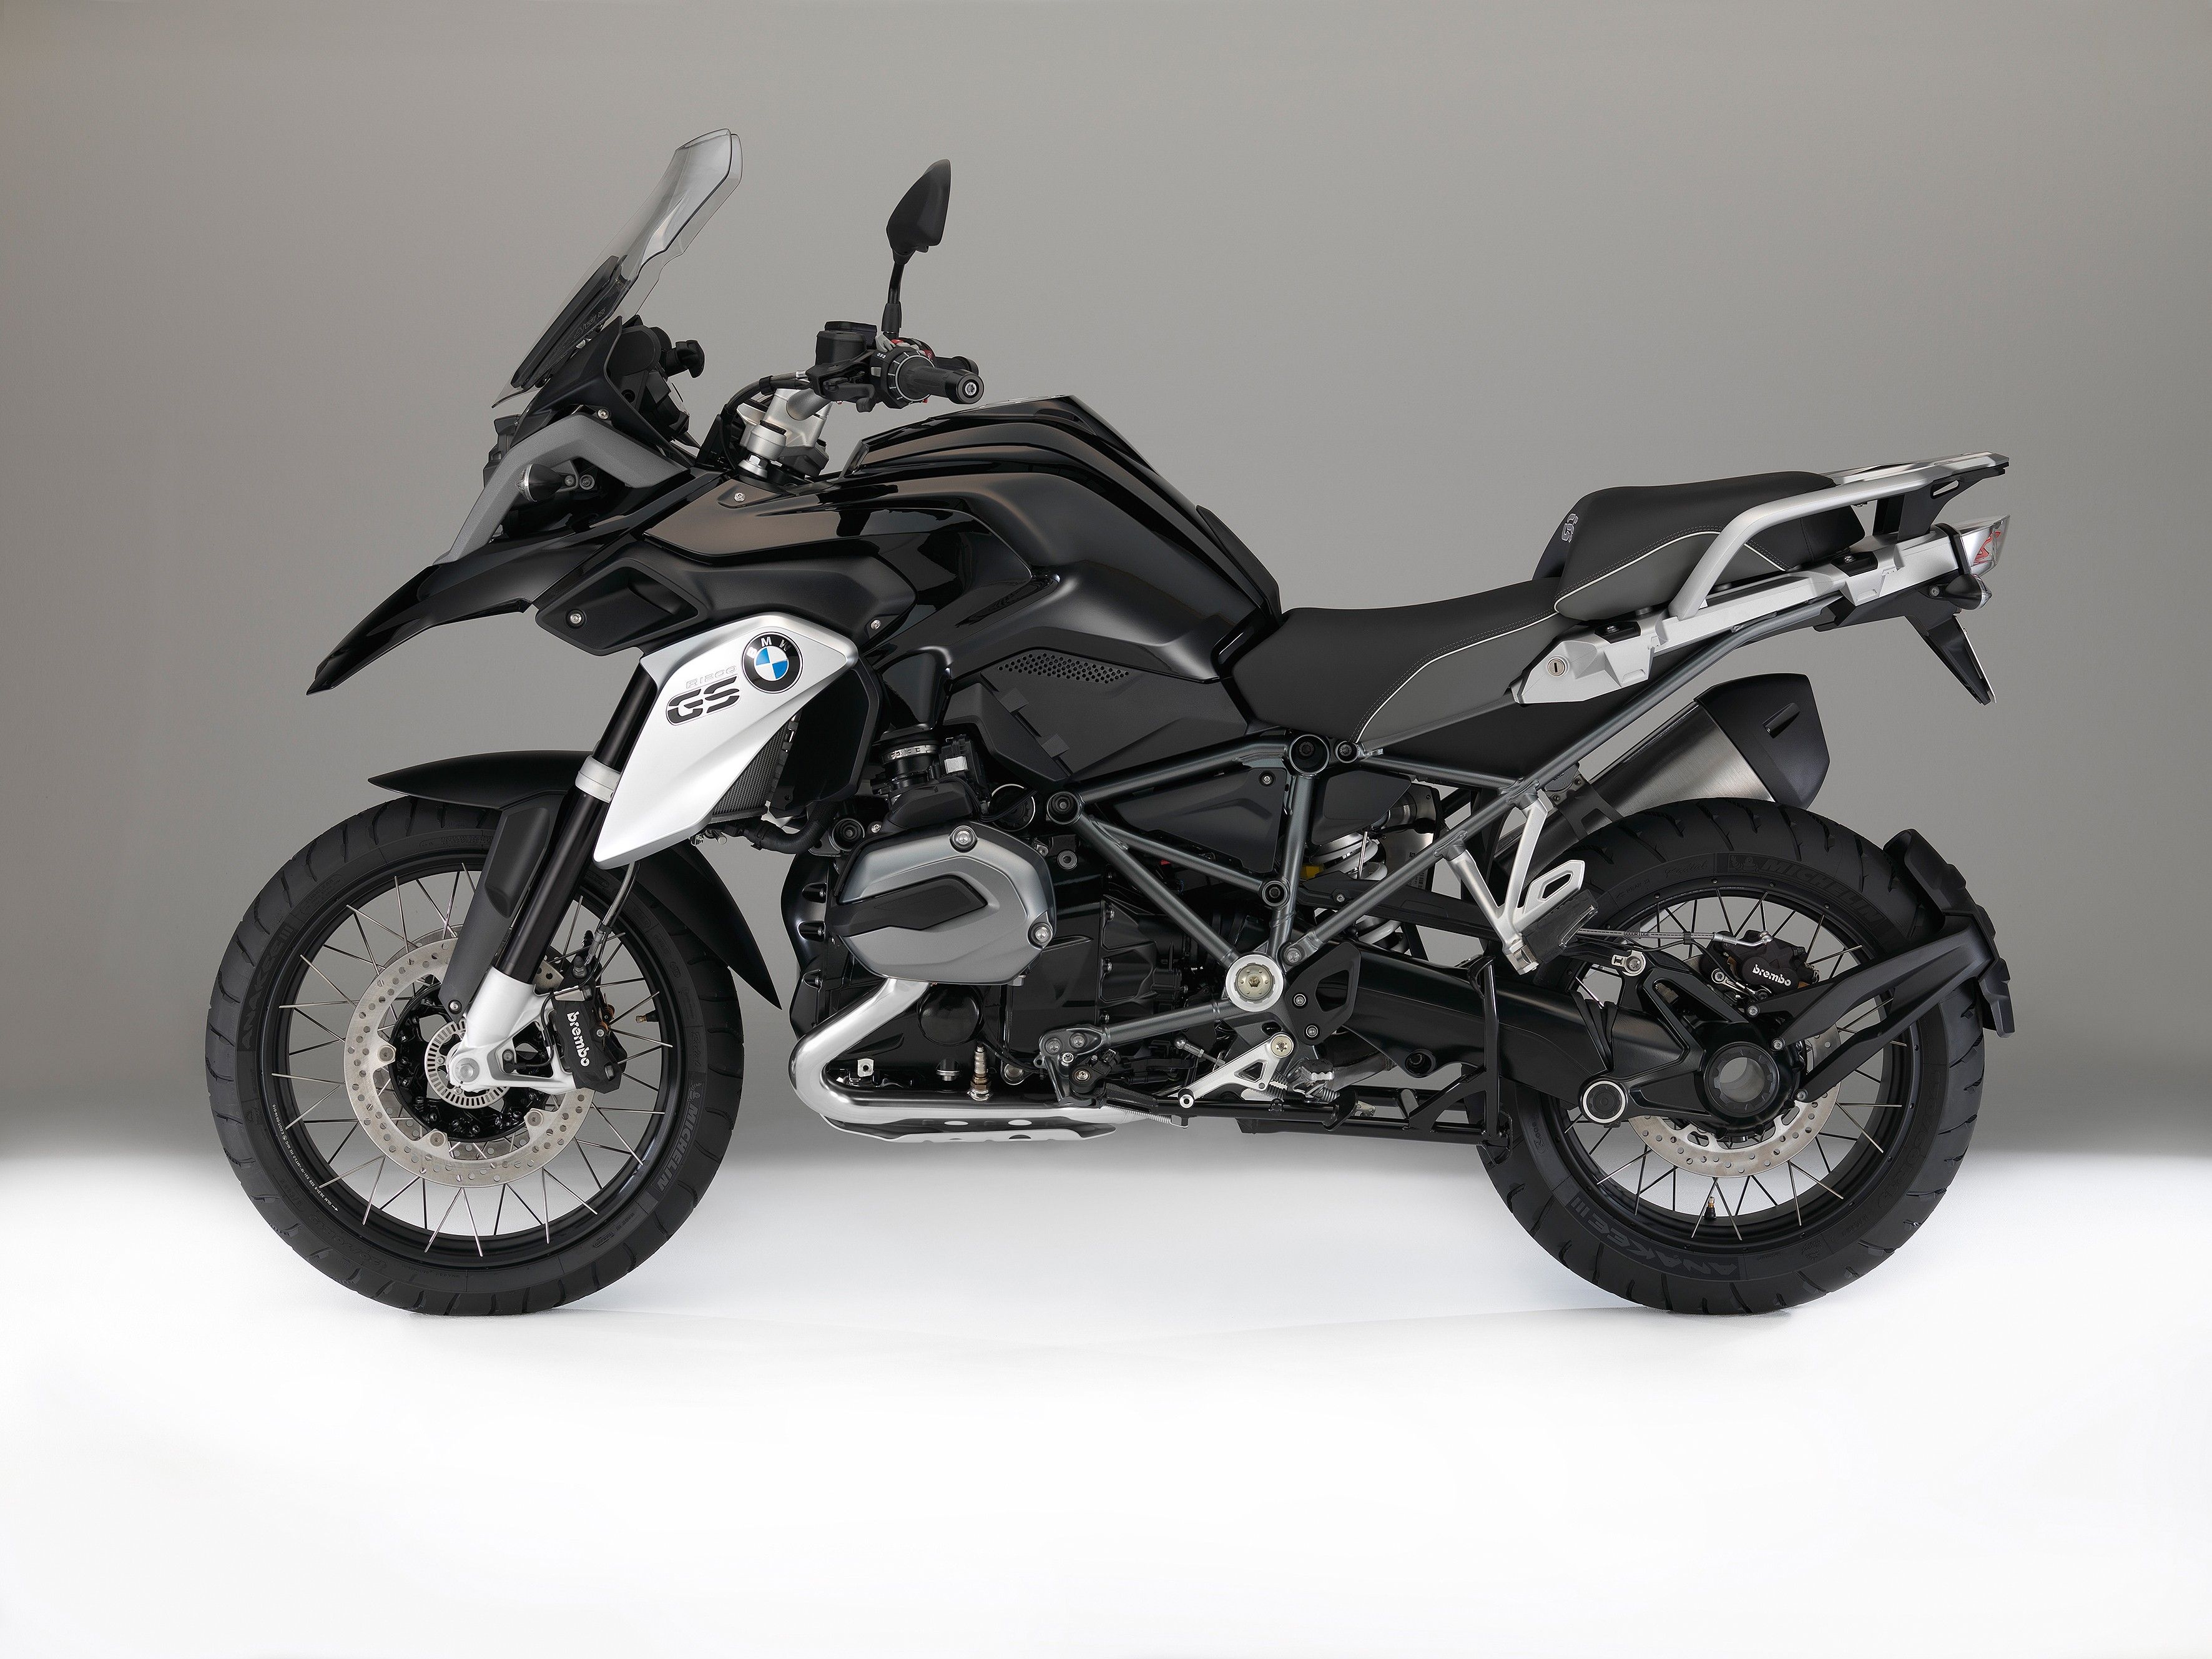 german prices for the 2016 bmw r1200gs tripleblack and other bikes announced autoevolution. Black Bedroom Furniture Sets. Home Design Ideas